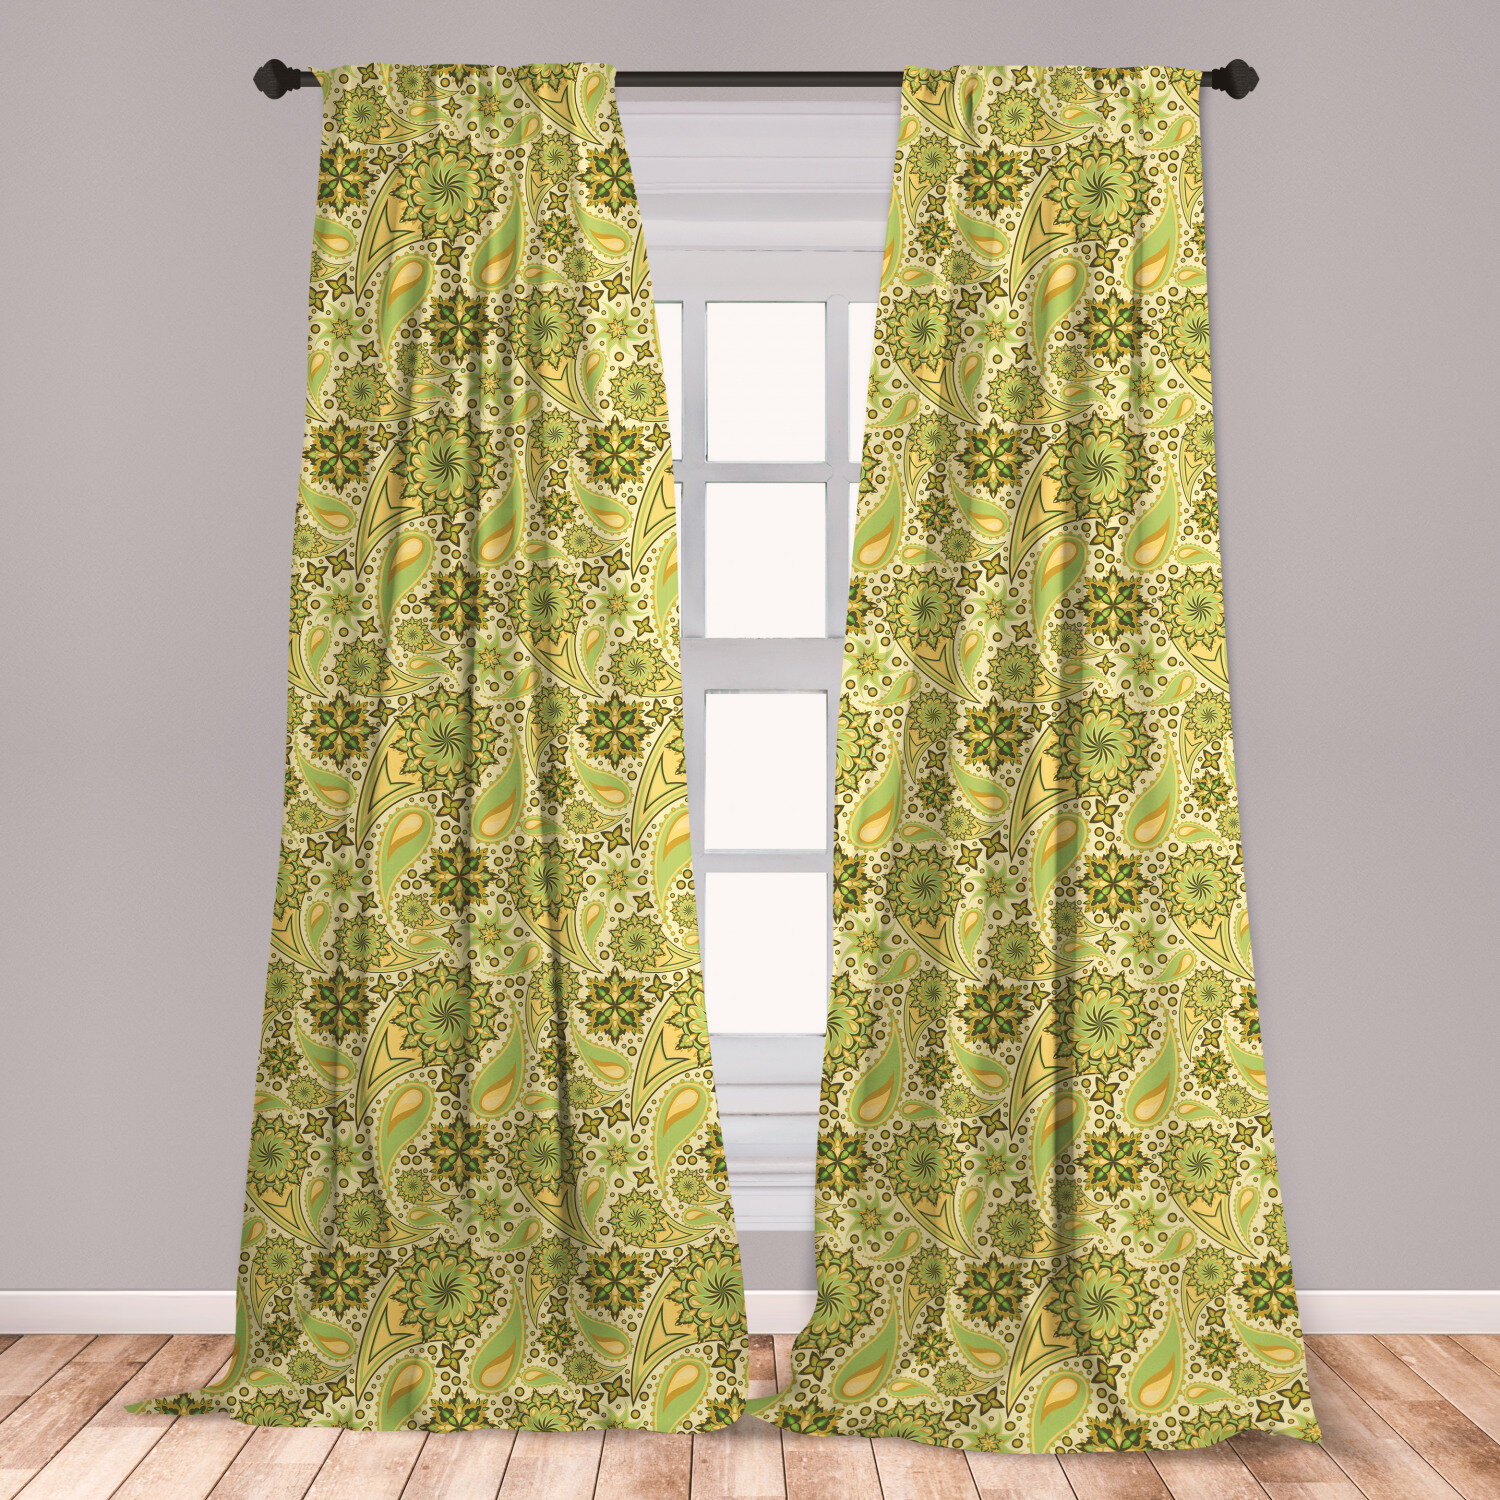 East Urban Home Ambesonne Ethnic Curtains Traditional Paisley Oriental Leaves Bohemian Motif Inspirations Window Treatments 2 Panel Set For Living Room Bedroom Decor 56 X 63 Lime And Avocado Green Wayfair